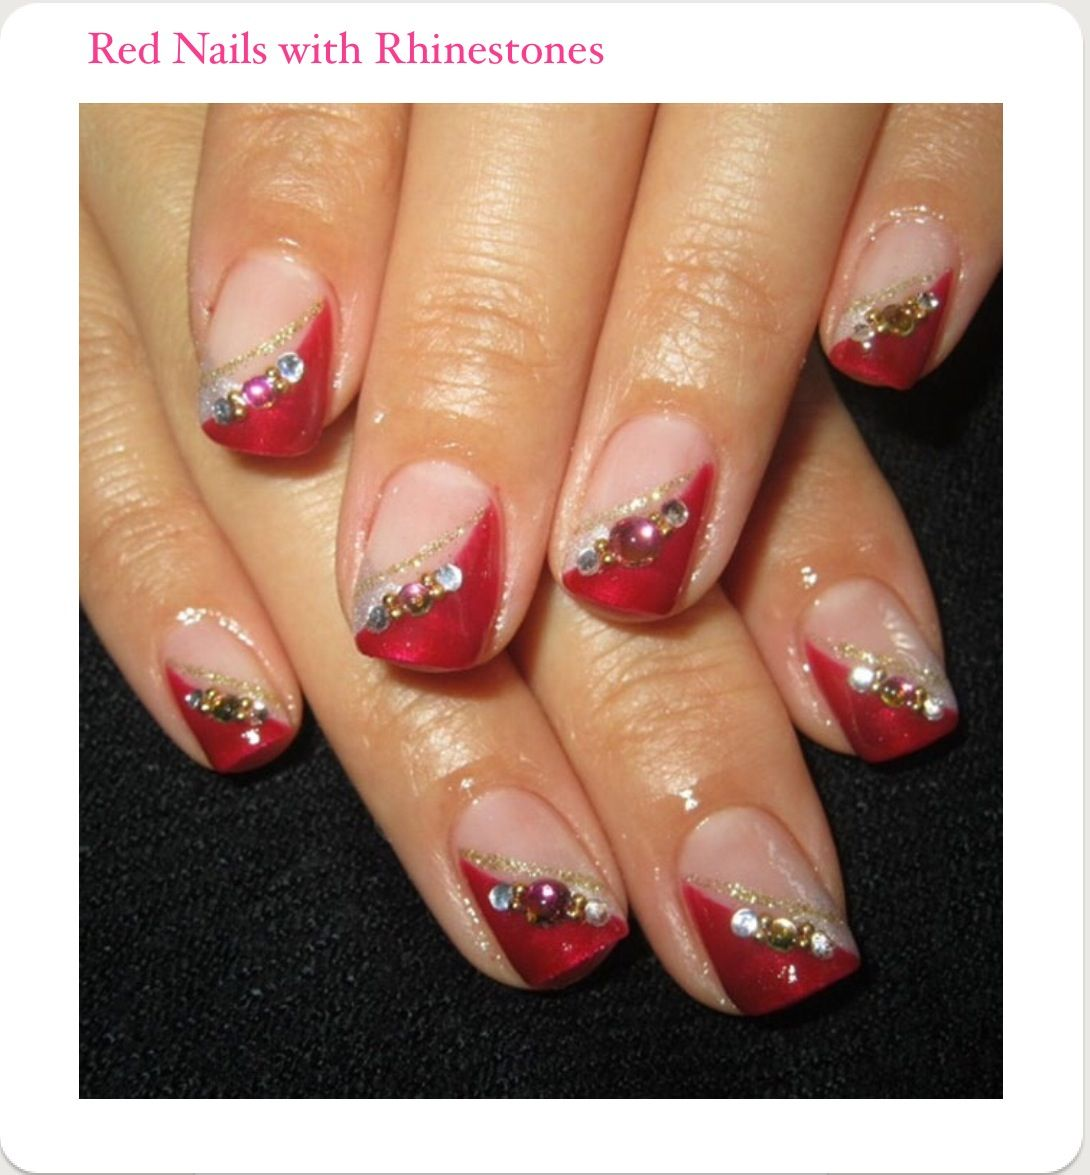 Pin by joslyn p on cool nails pinterest red diagonal french nails by cutenaildesigns nail art gallery prinsesfo Gallery